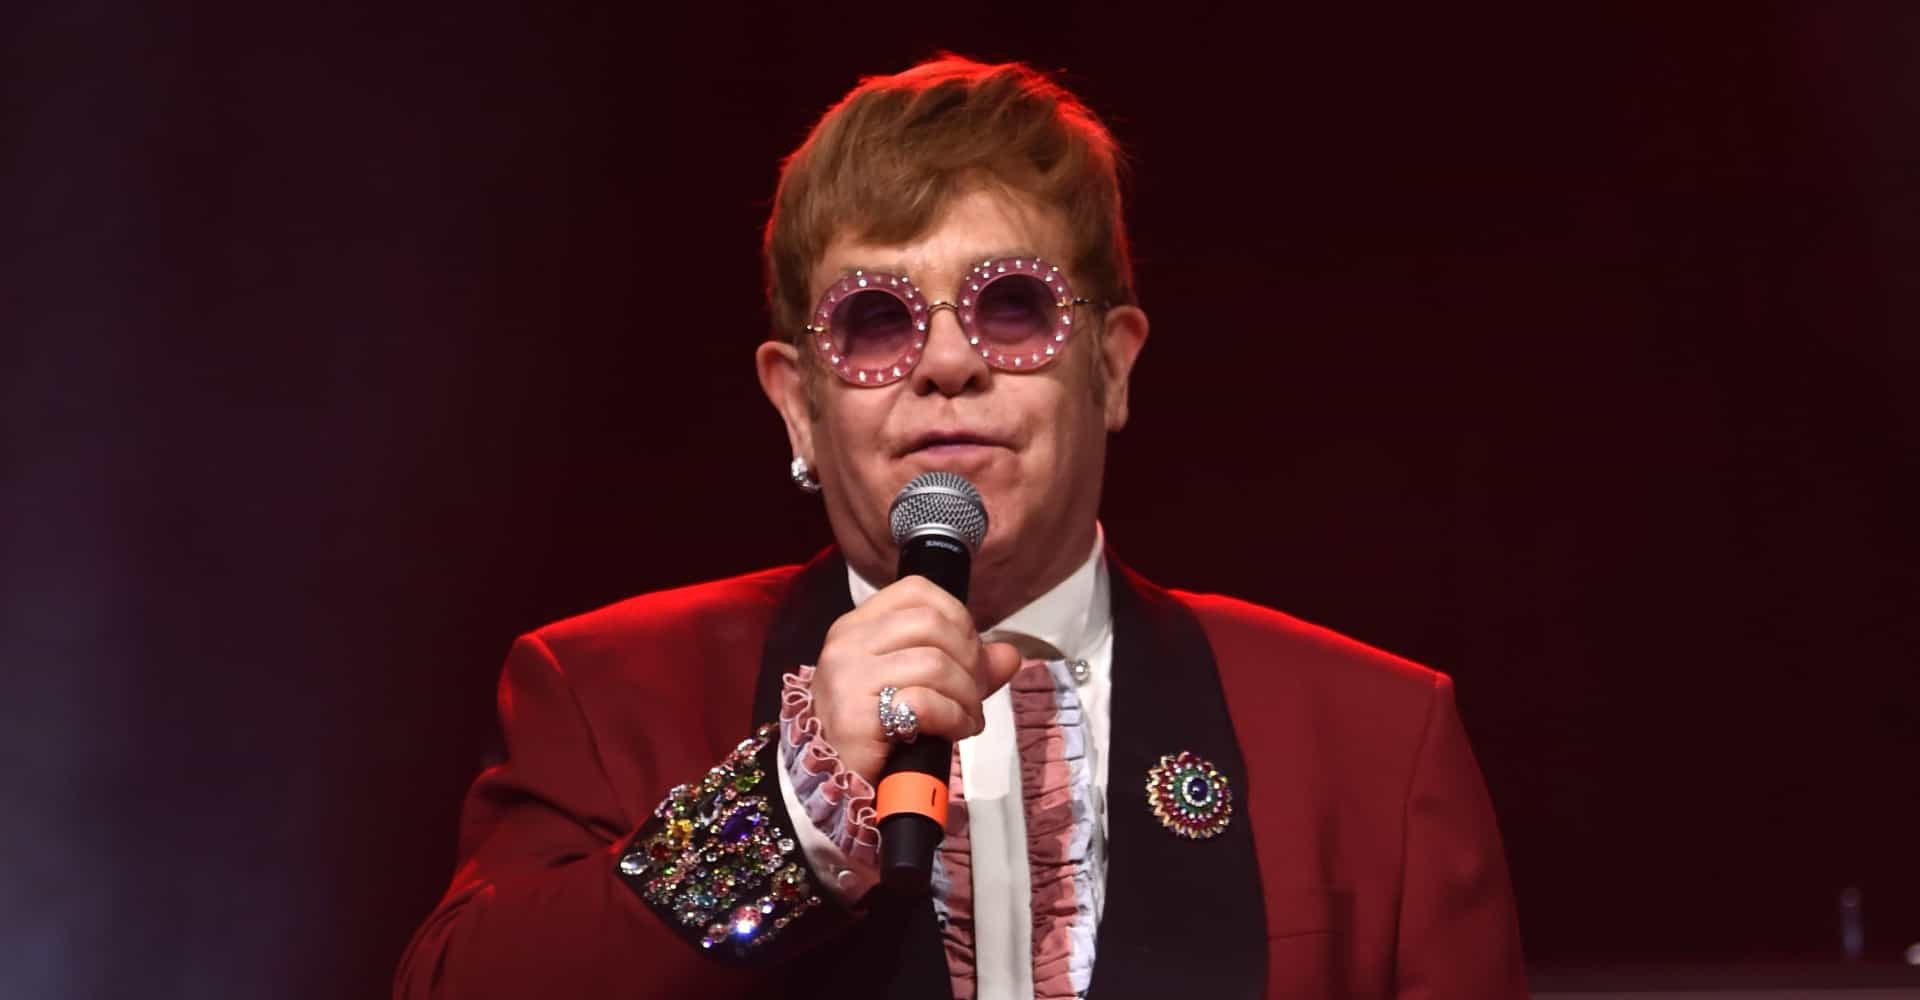 Elton John surrenders the stage after fan touches him during fight song